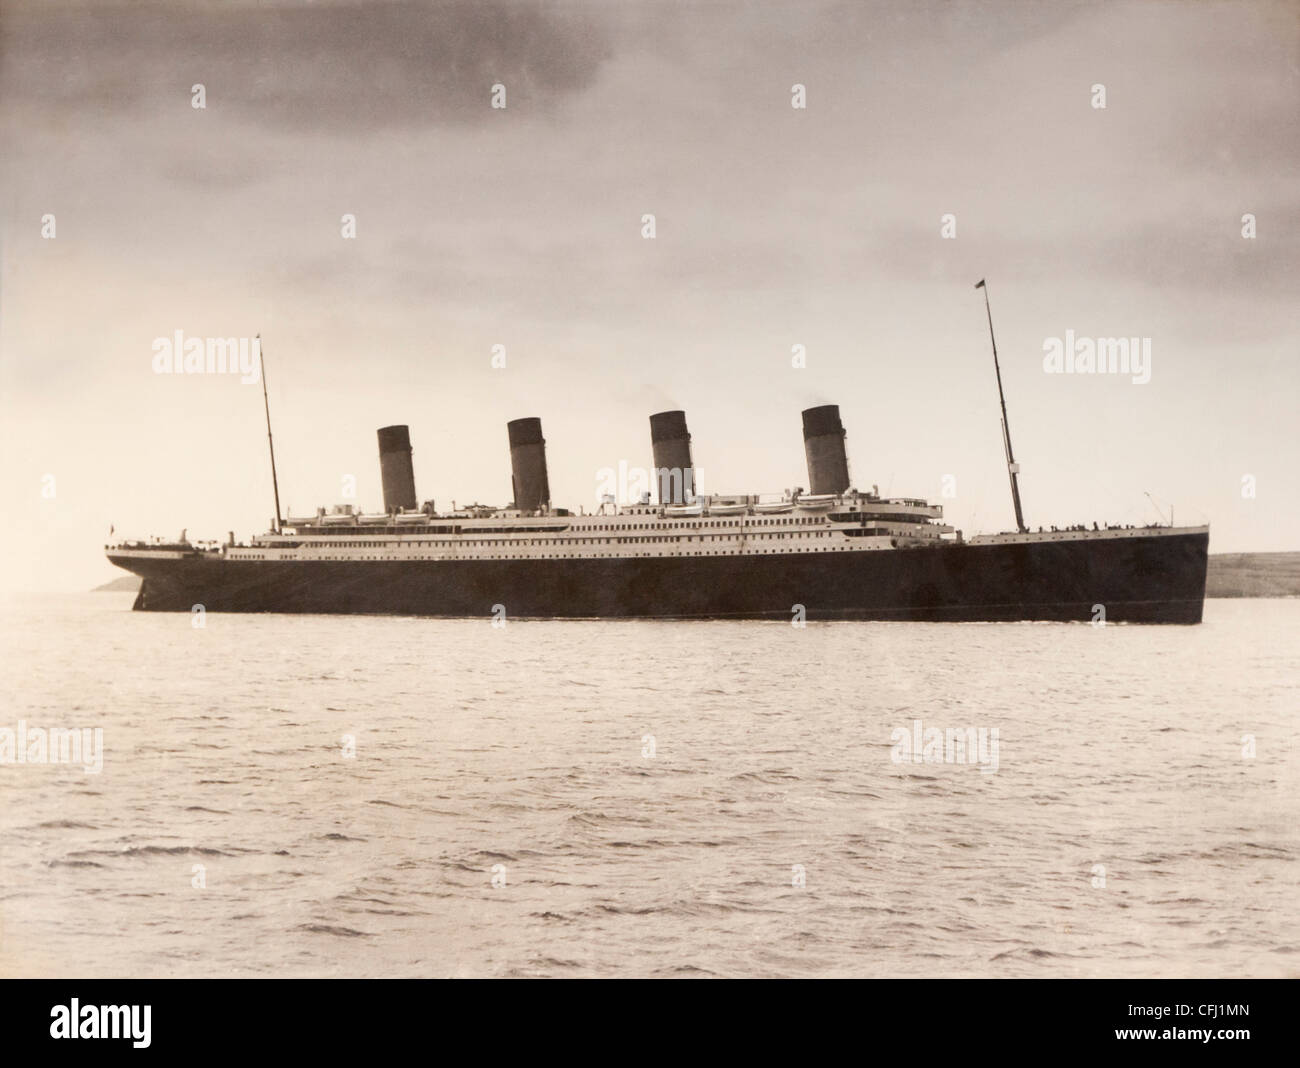 RMS Titanic of the White Star Line which sank at 2 20 AM Monday morning April 15, 1912 after hitting iceberg in - Stock Image